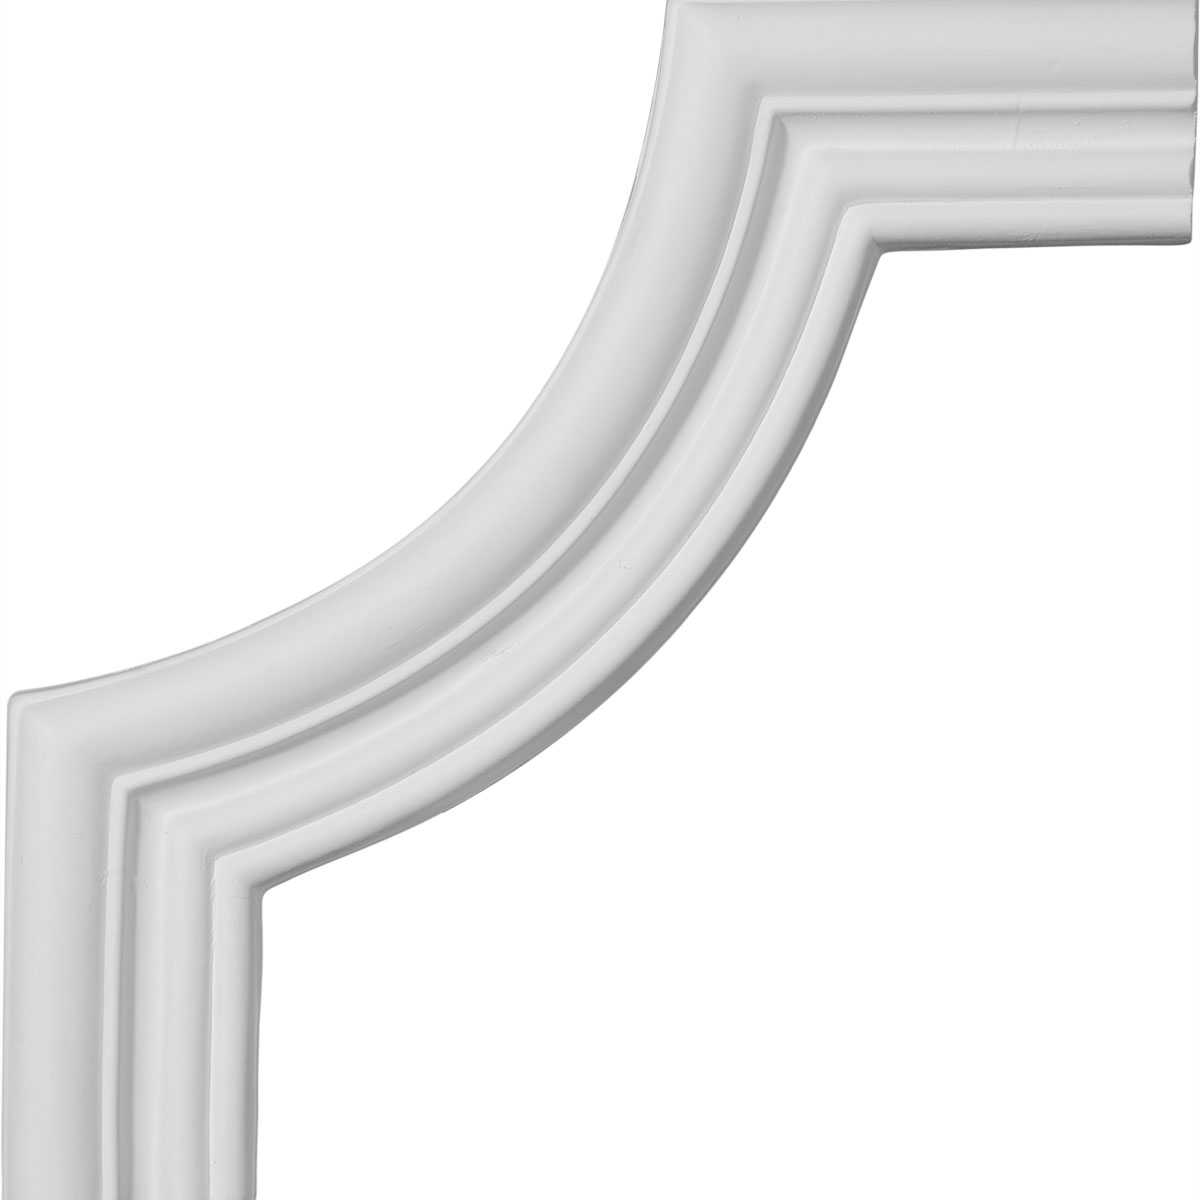 Ekena Millwork Swindon 7 3/4''H x 7 3/4''W Panel Moulding Corner